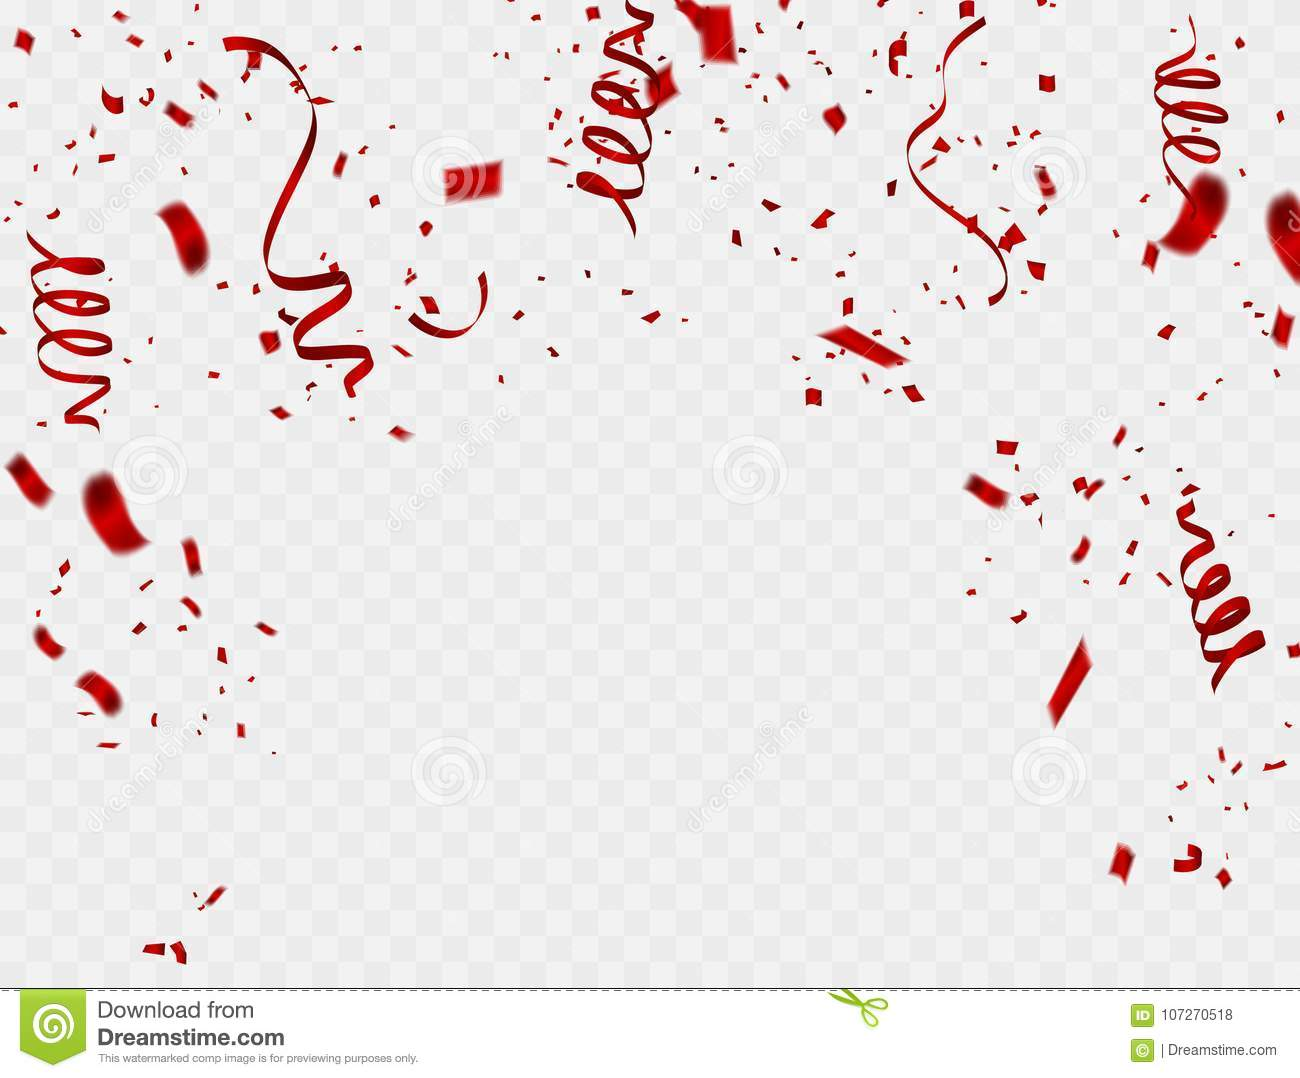 celebration background template with confetti and red ribbons